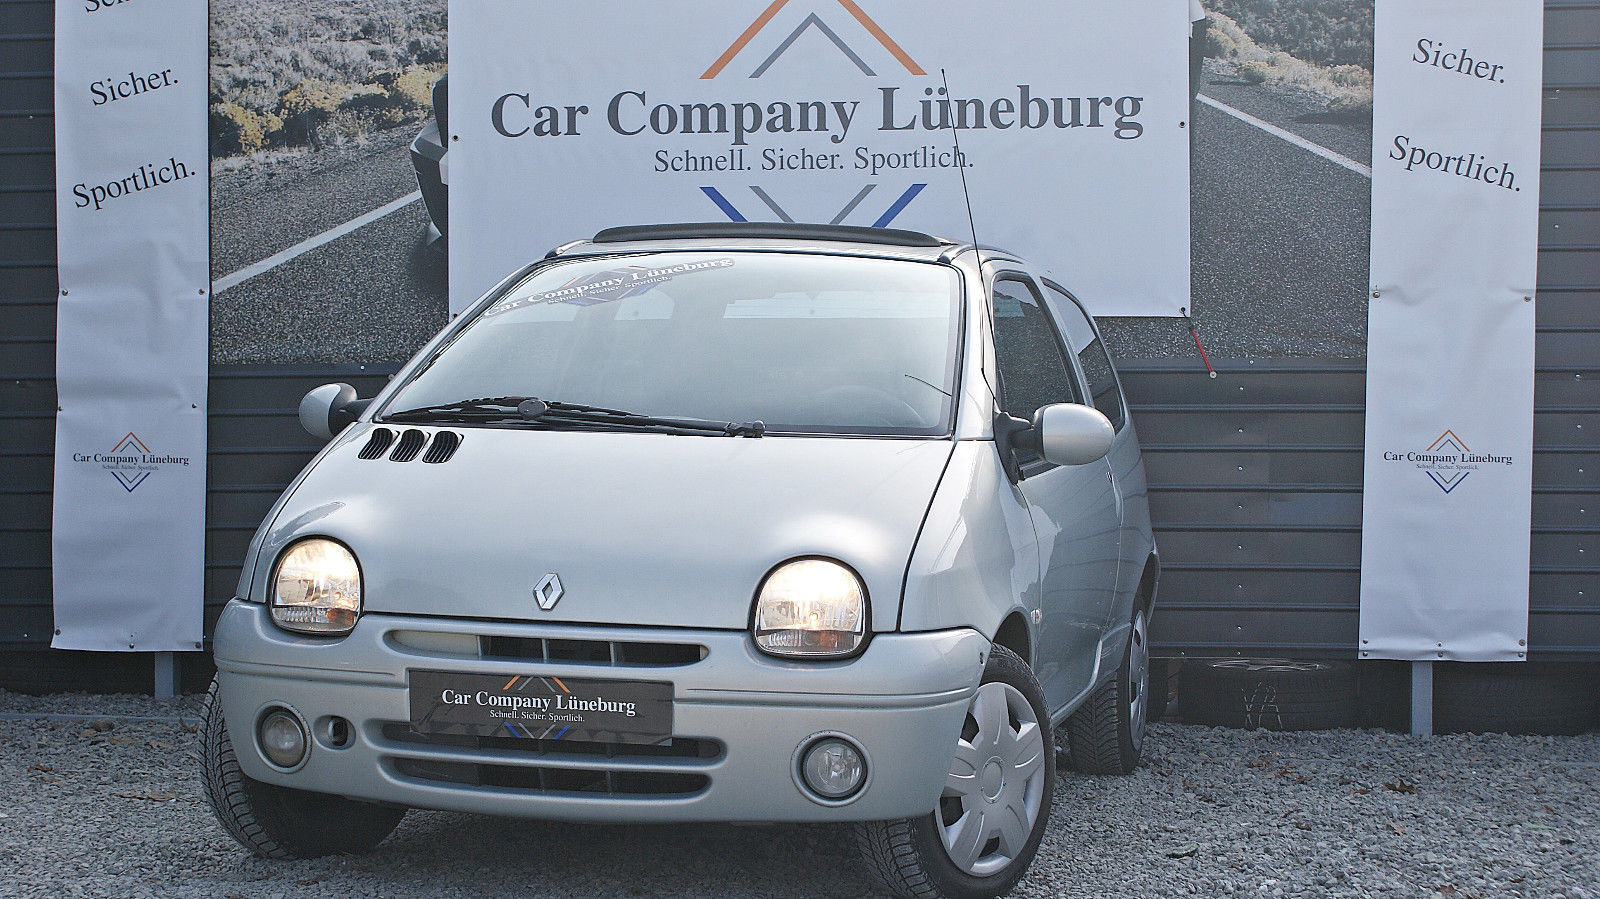 RENAULT Twingo 1.2 Dynamique Topzustand / 2. Hand